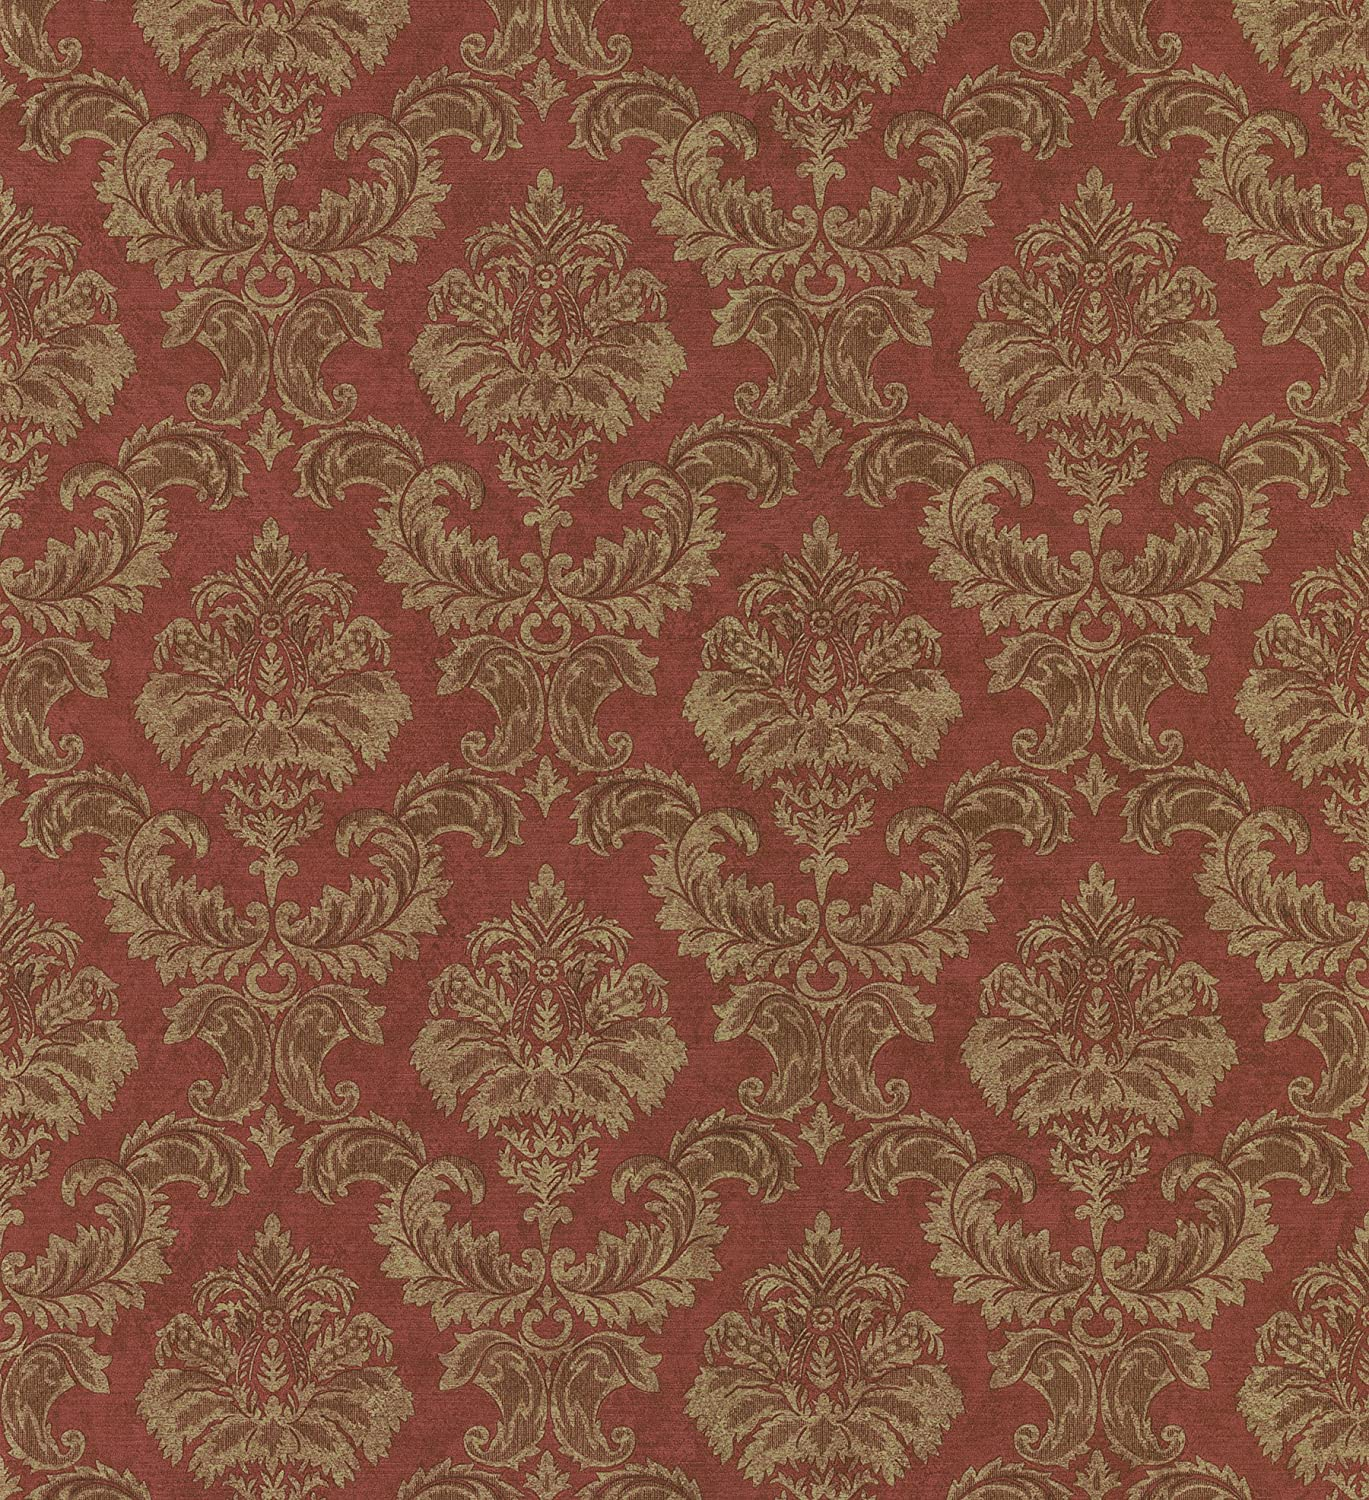 Brewster 982 75327 Textured Weaves Damask Wallpaper 20 5 Inch By